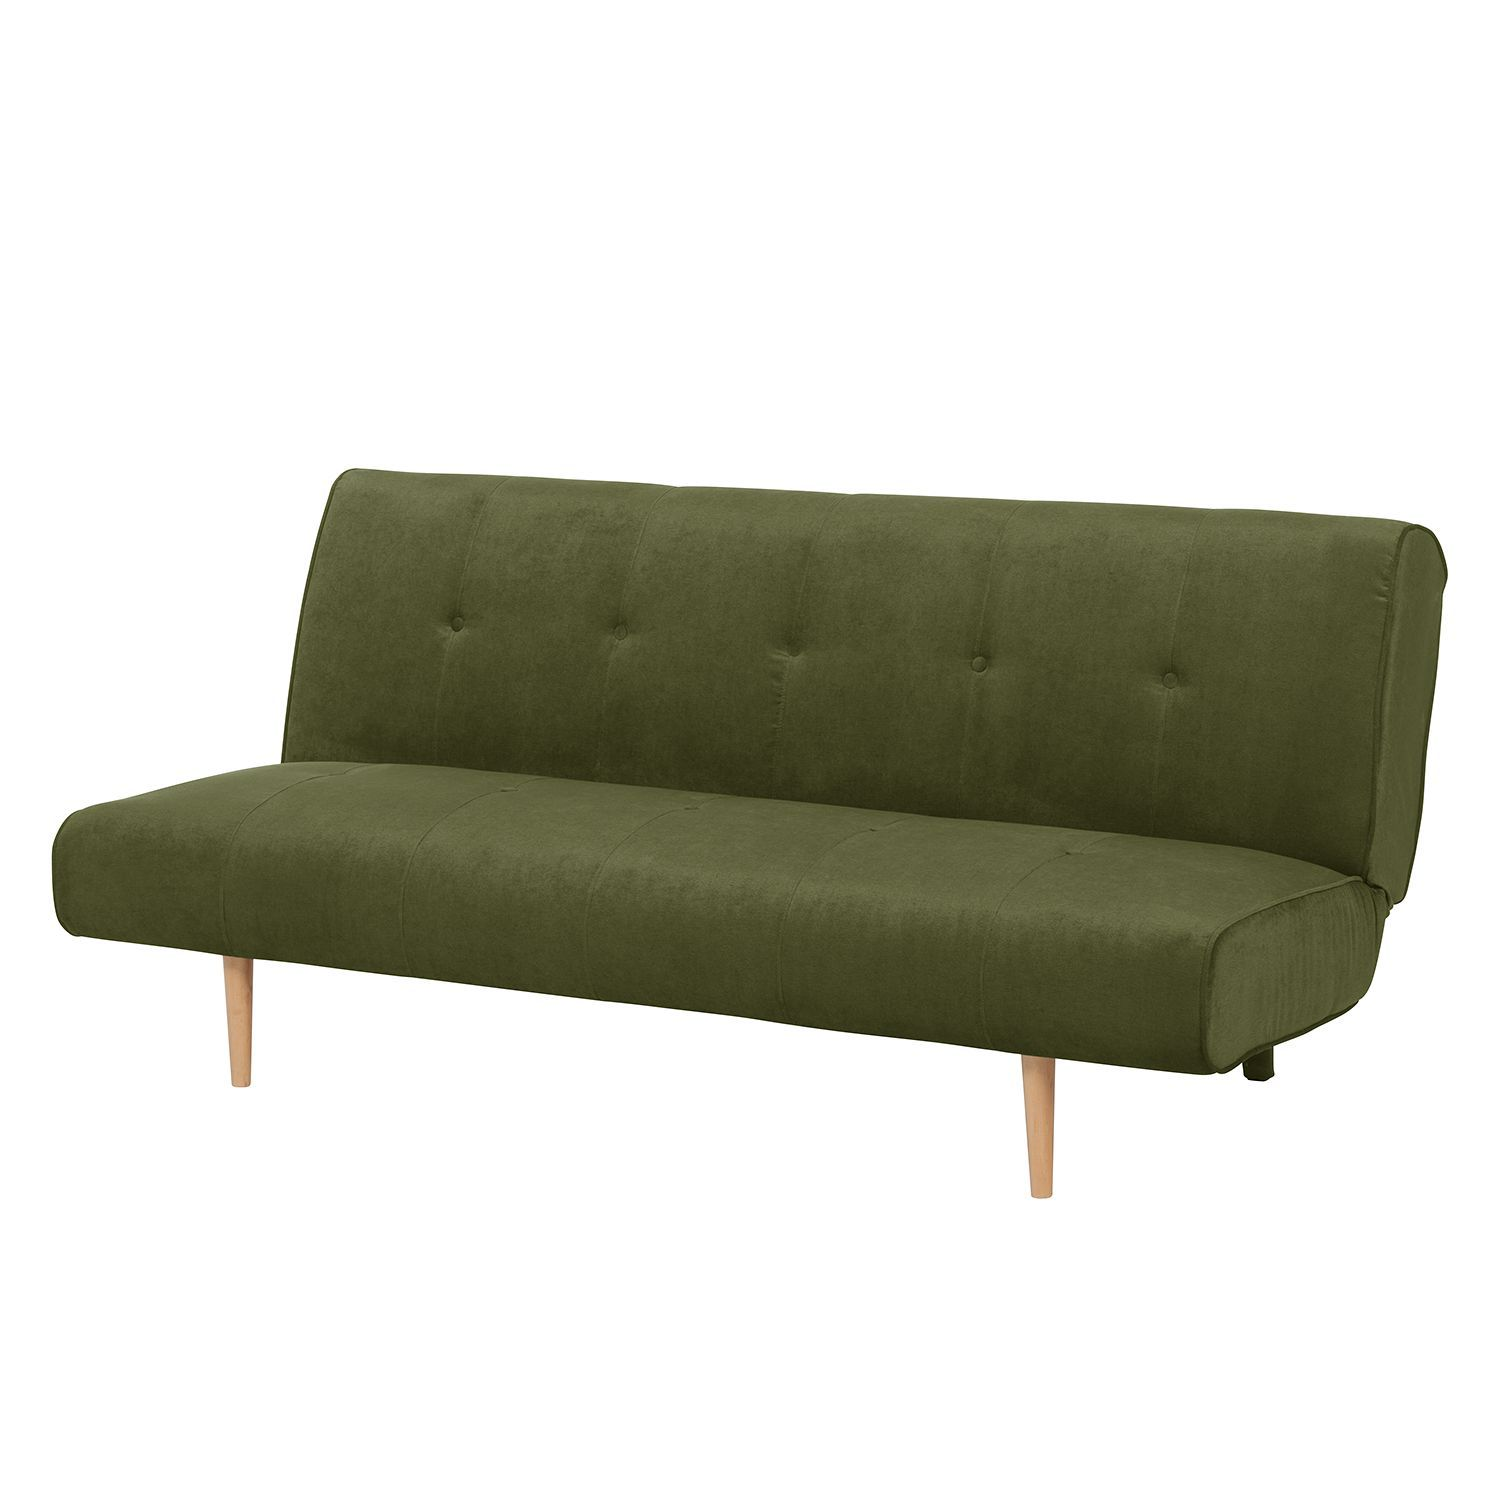 Schlafsofas Online Bestellen Pin By Ladendirekt On Sofas Couches Sofa Furniture Design